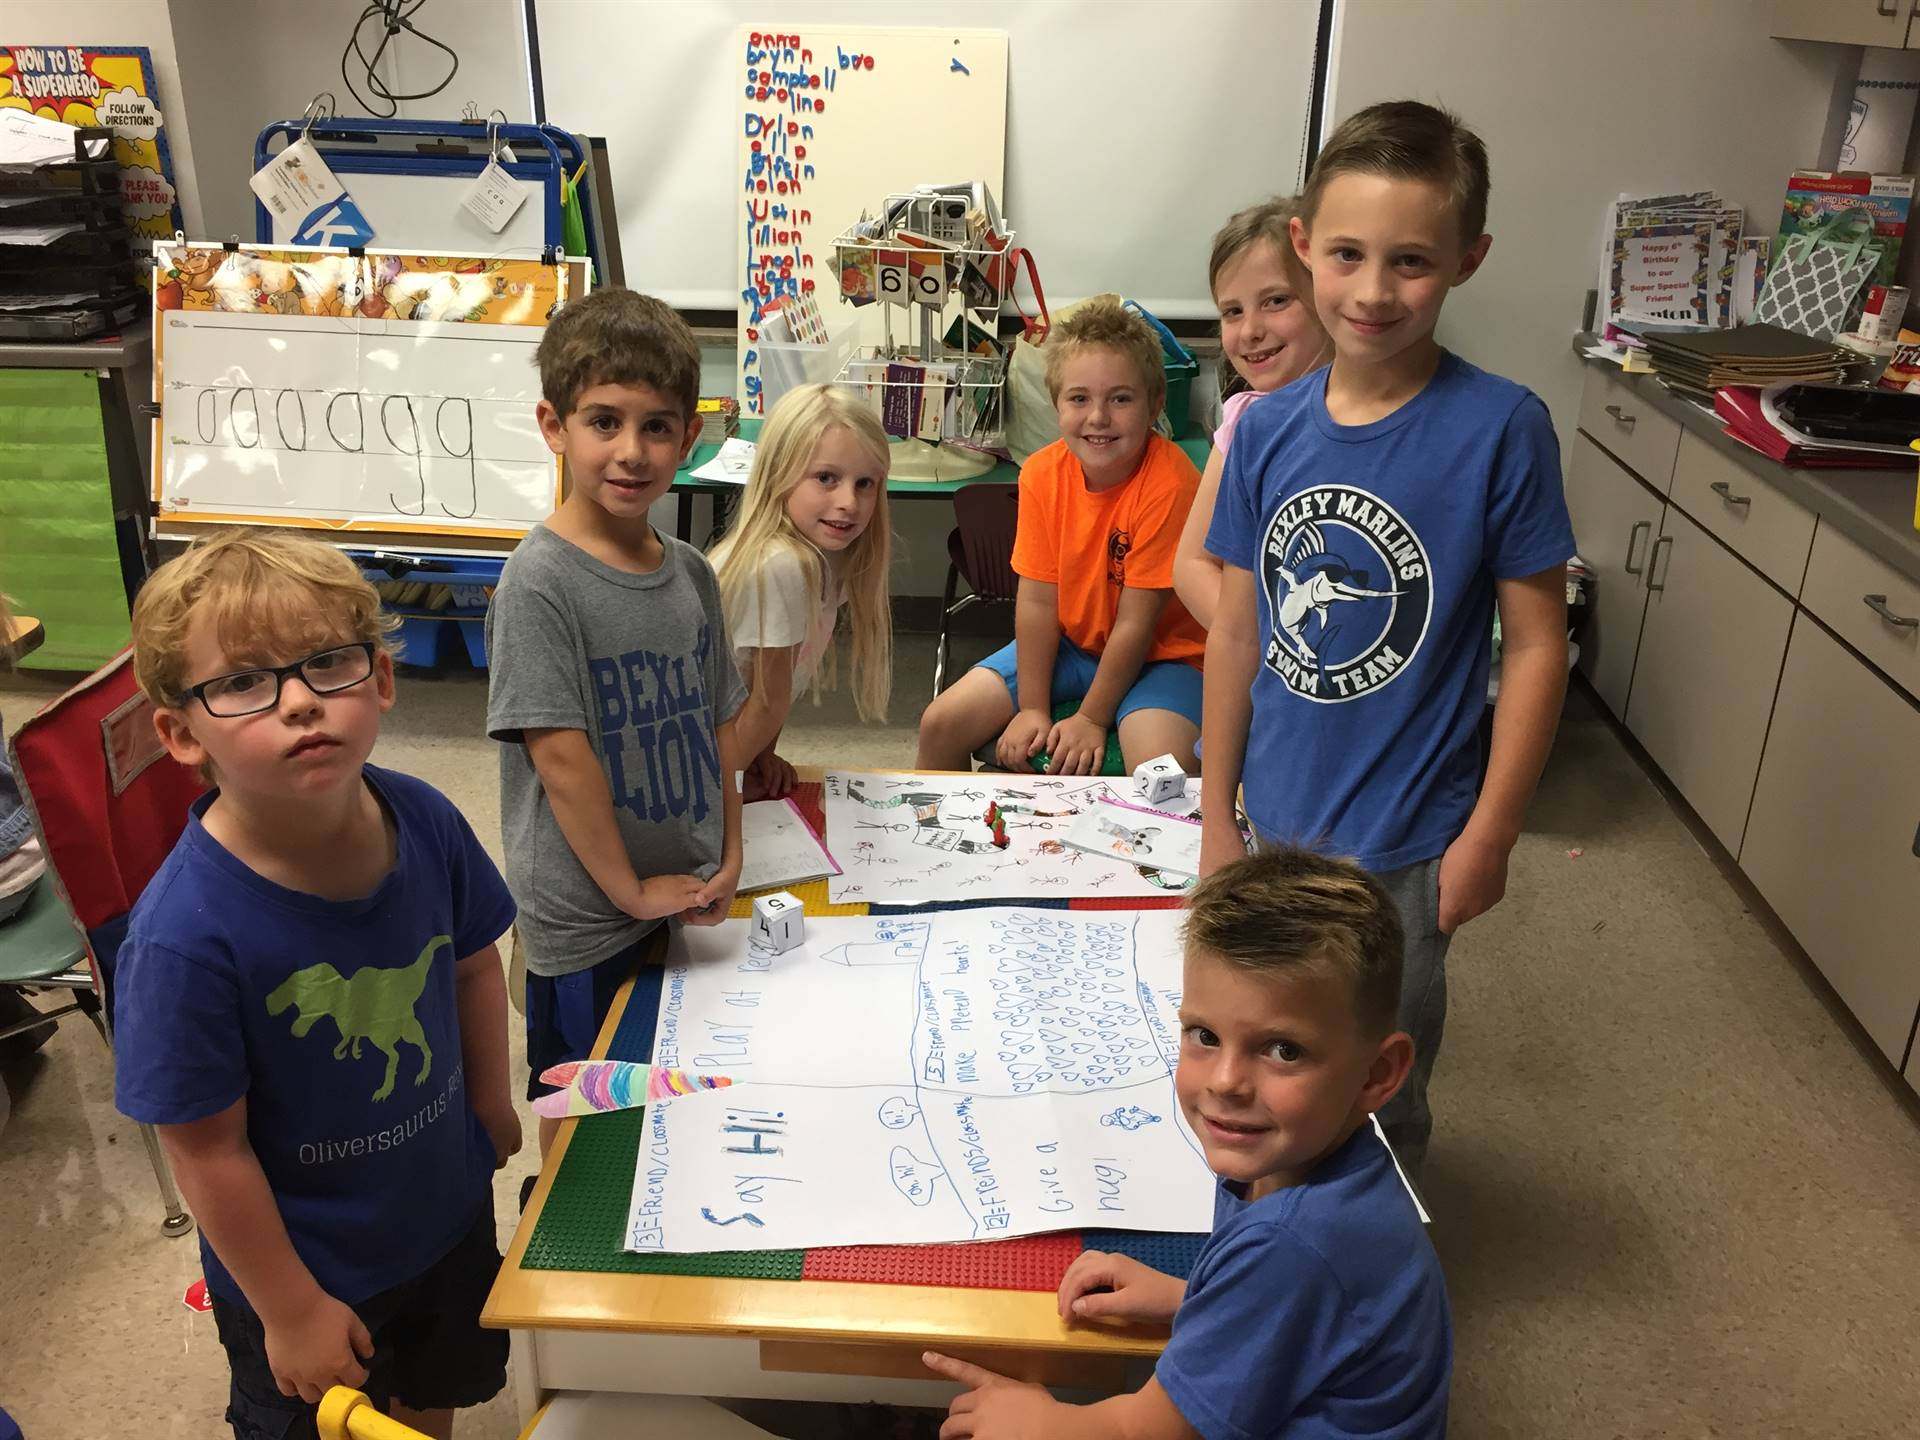 2nd graders share their new knowledge about health and safety with their friends in kindergarten.